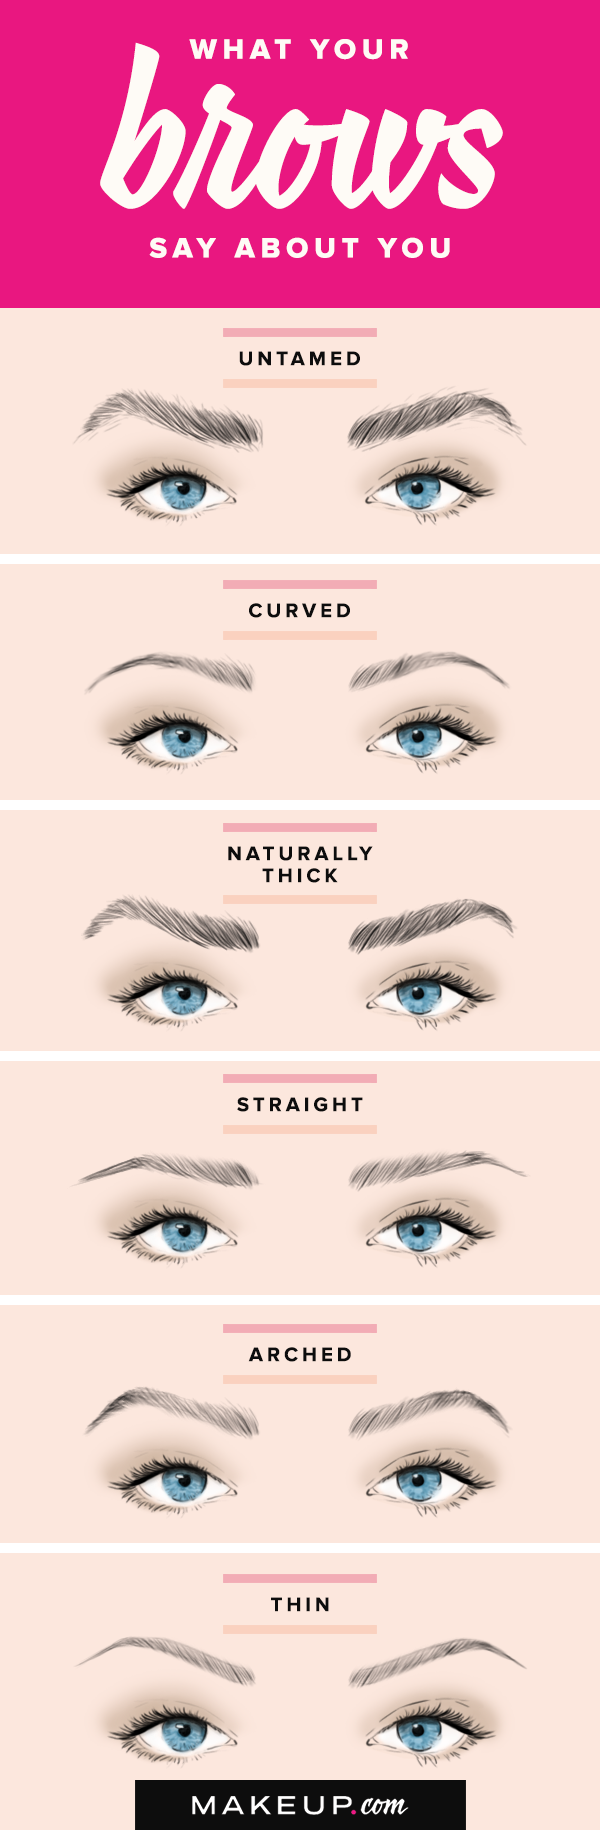 What Your Brows Say About You Eyebrow Brows And Arch